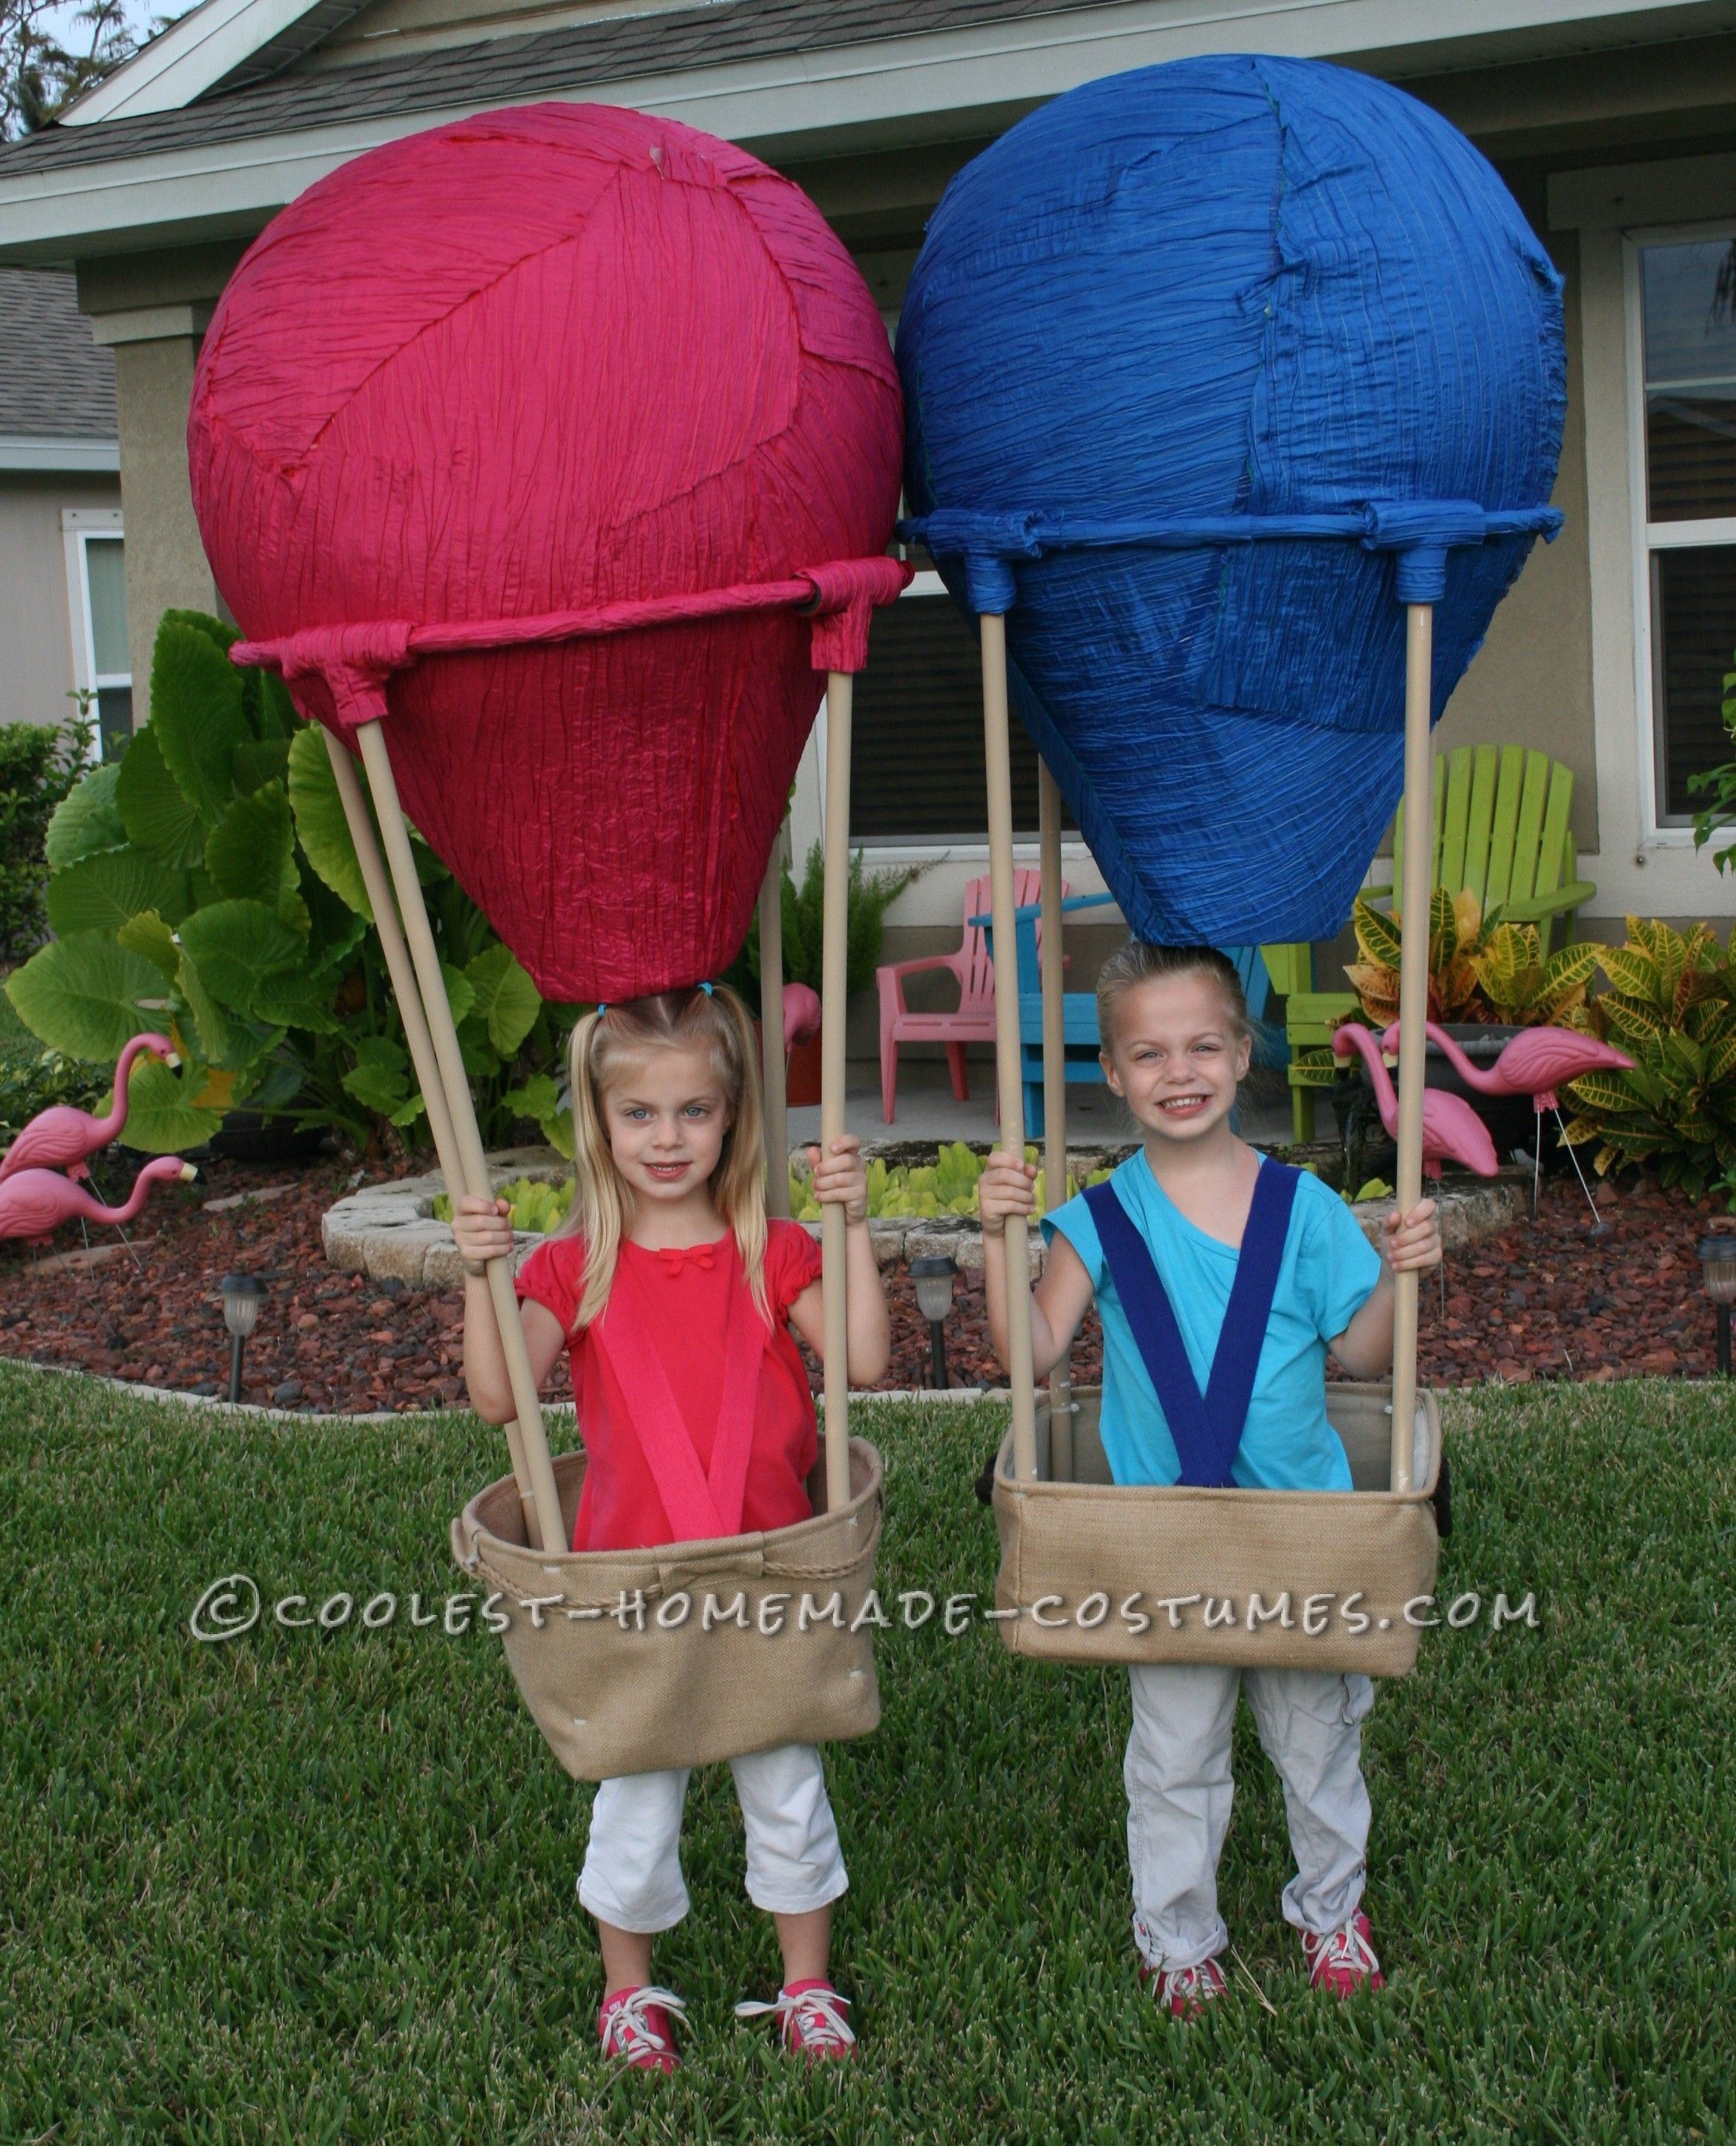 halloween costumes - How To Make Homemade Costumes For Halloween